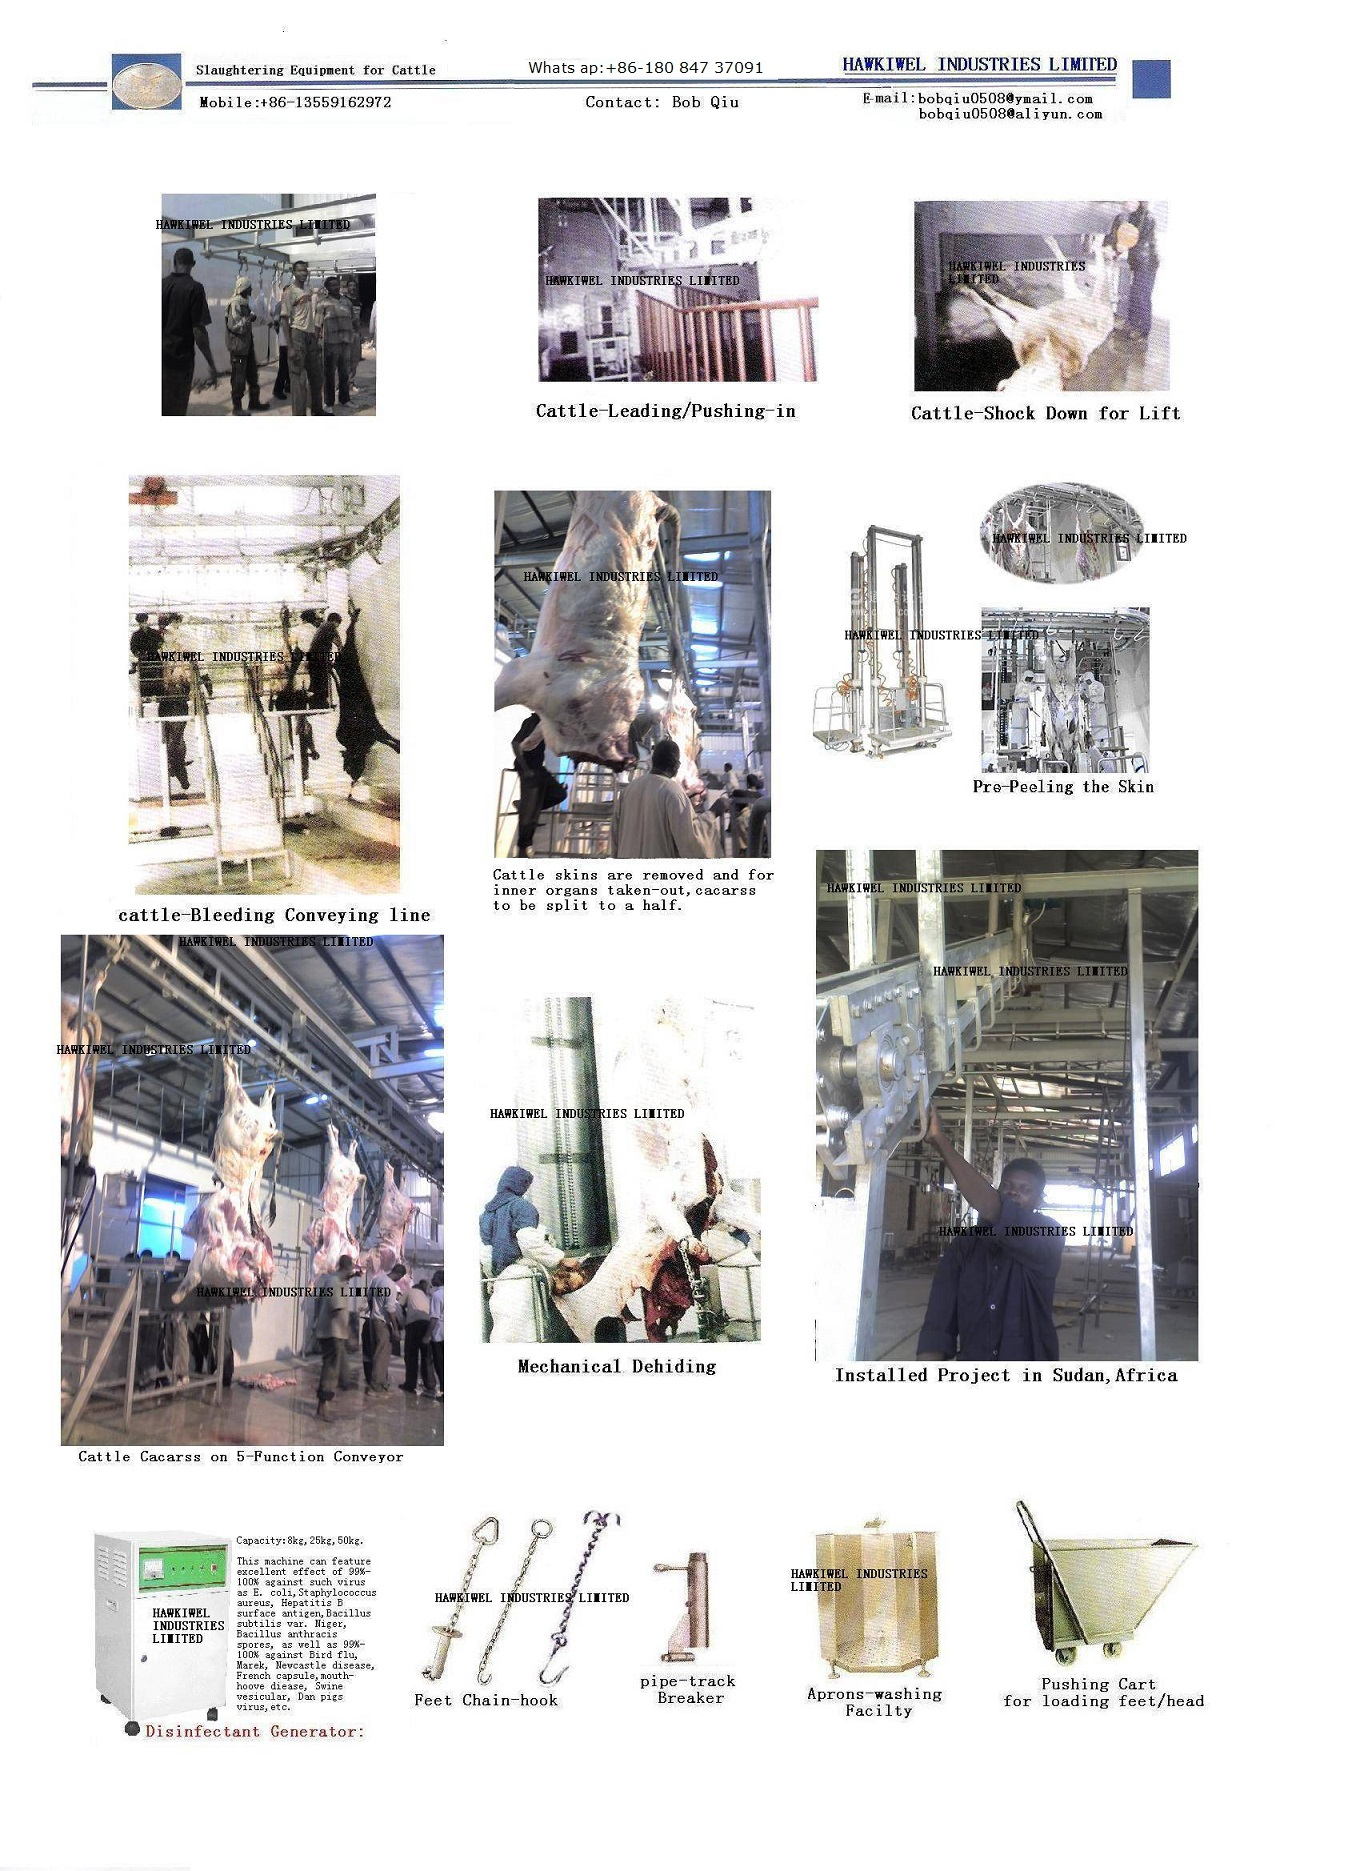 cattle/sheep/pigs slaugthering house equipment/machinery